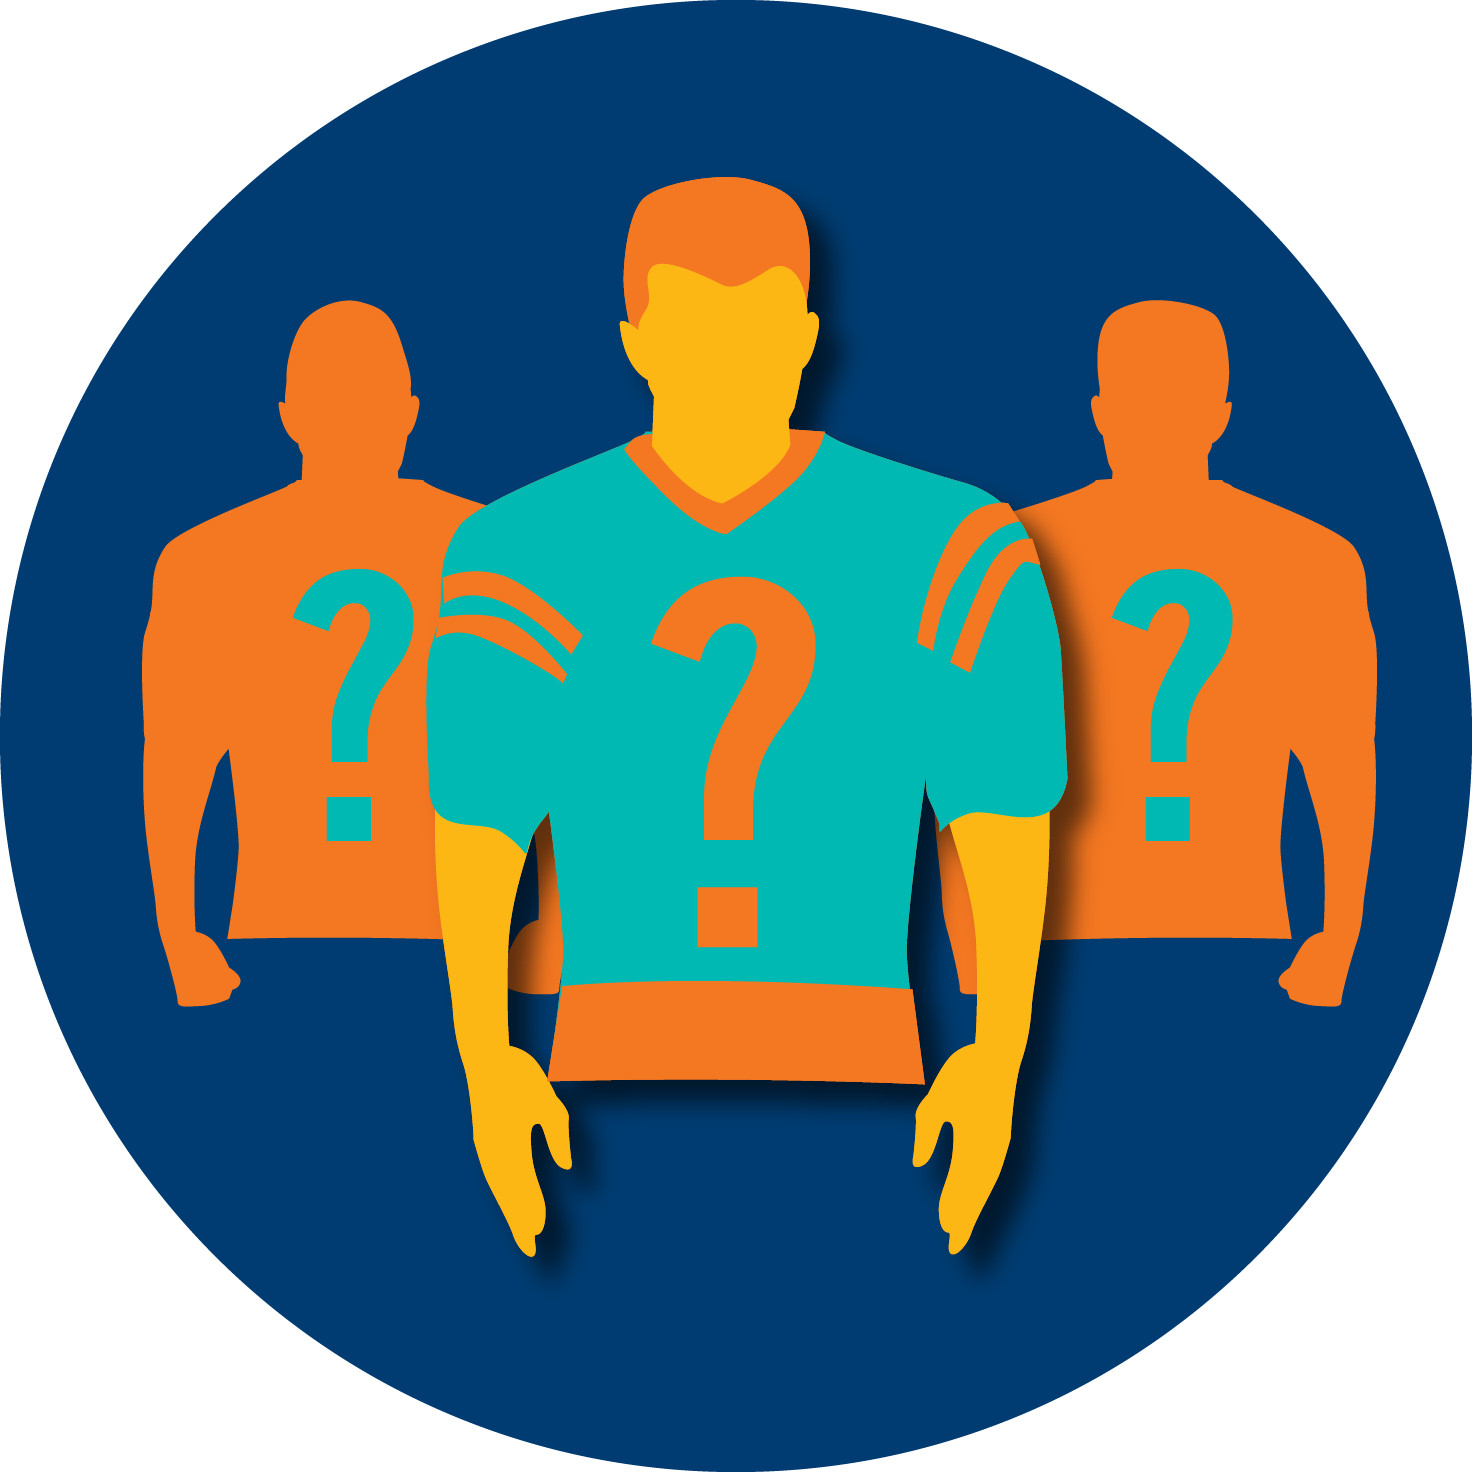 A football player is shown with two silhouettes with question marks on each side, signifying that there is no certain way to predict a winner in sports.